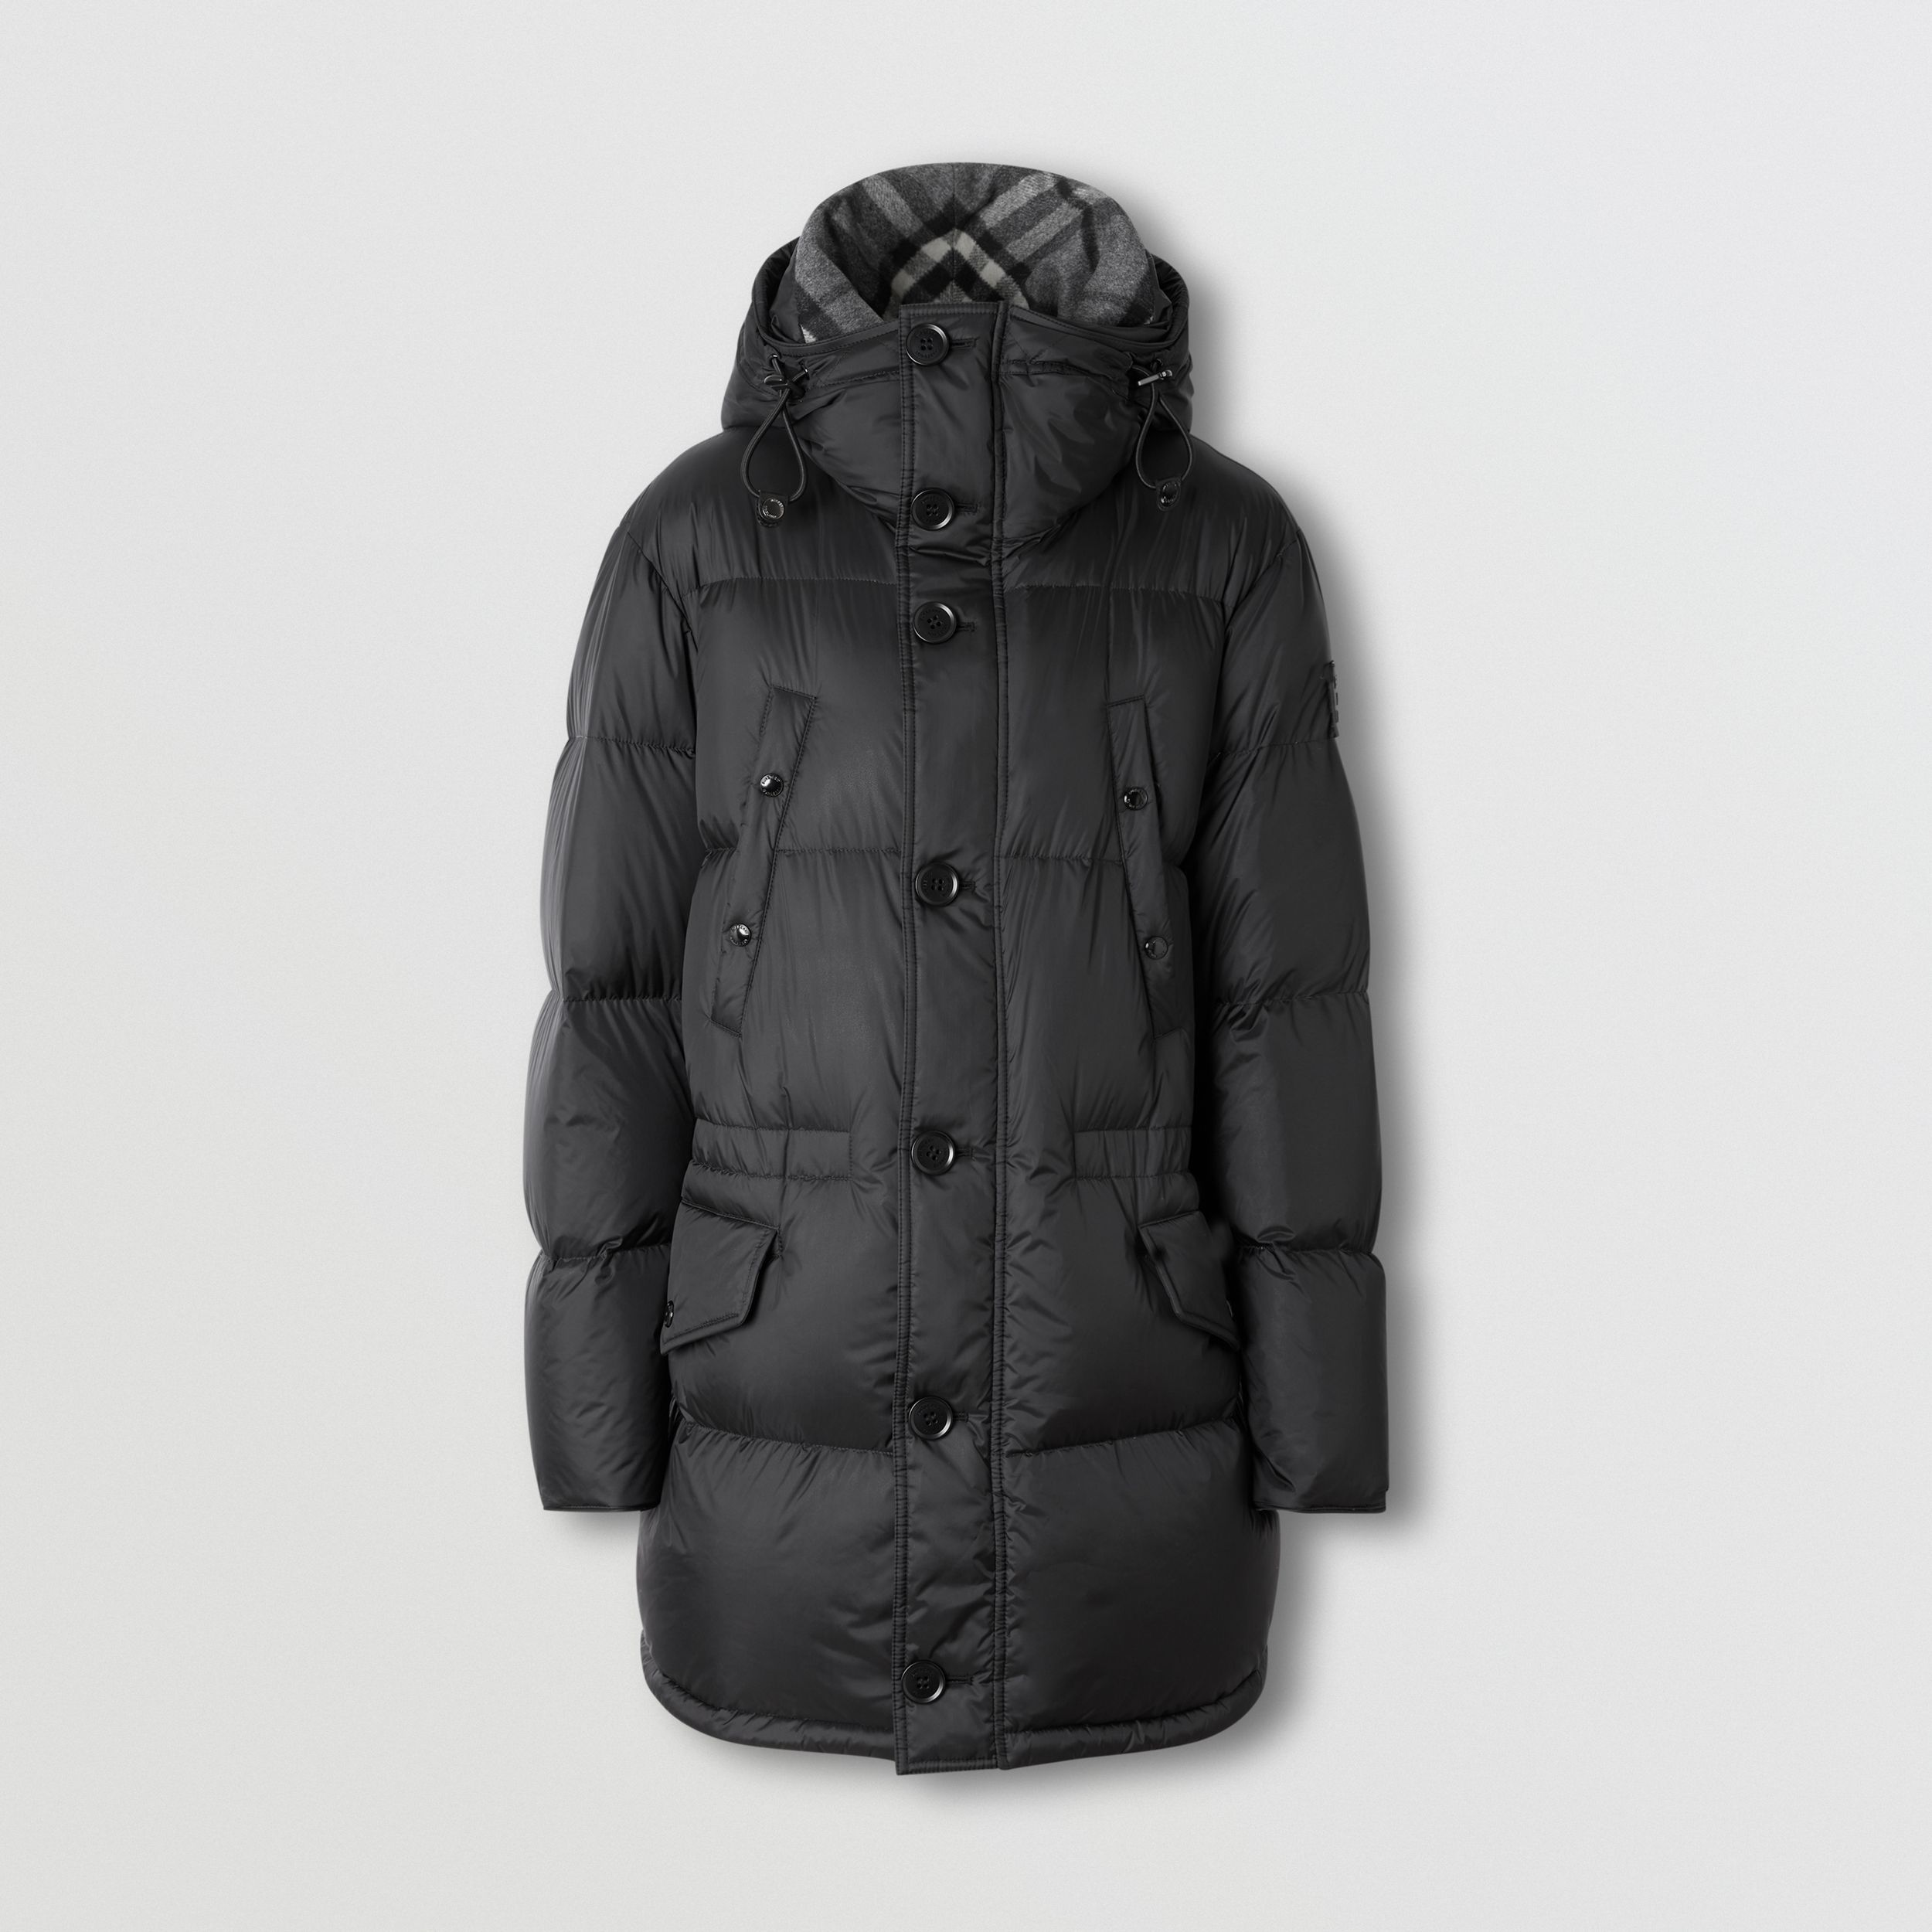 Logo Detail Hooded Puffer Coat in Black - Men | Burberry - 4